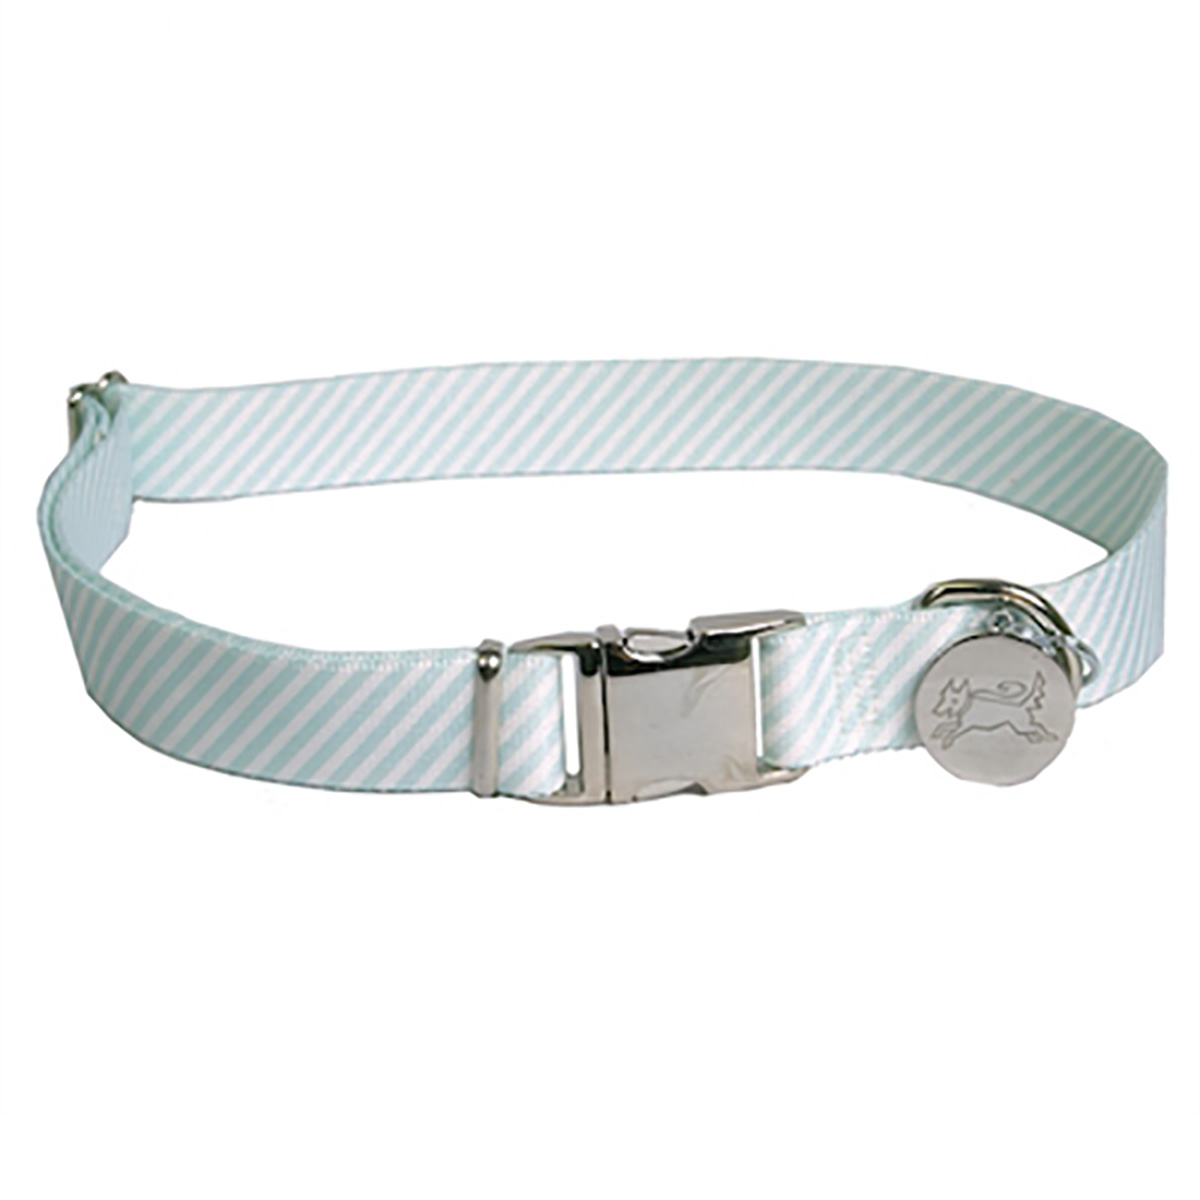 Southern Dawg Seersucker Dog Collar by Yellow Dog - Mint